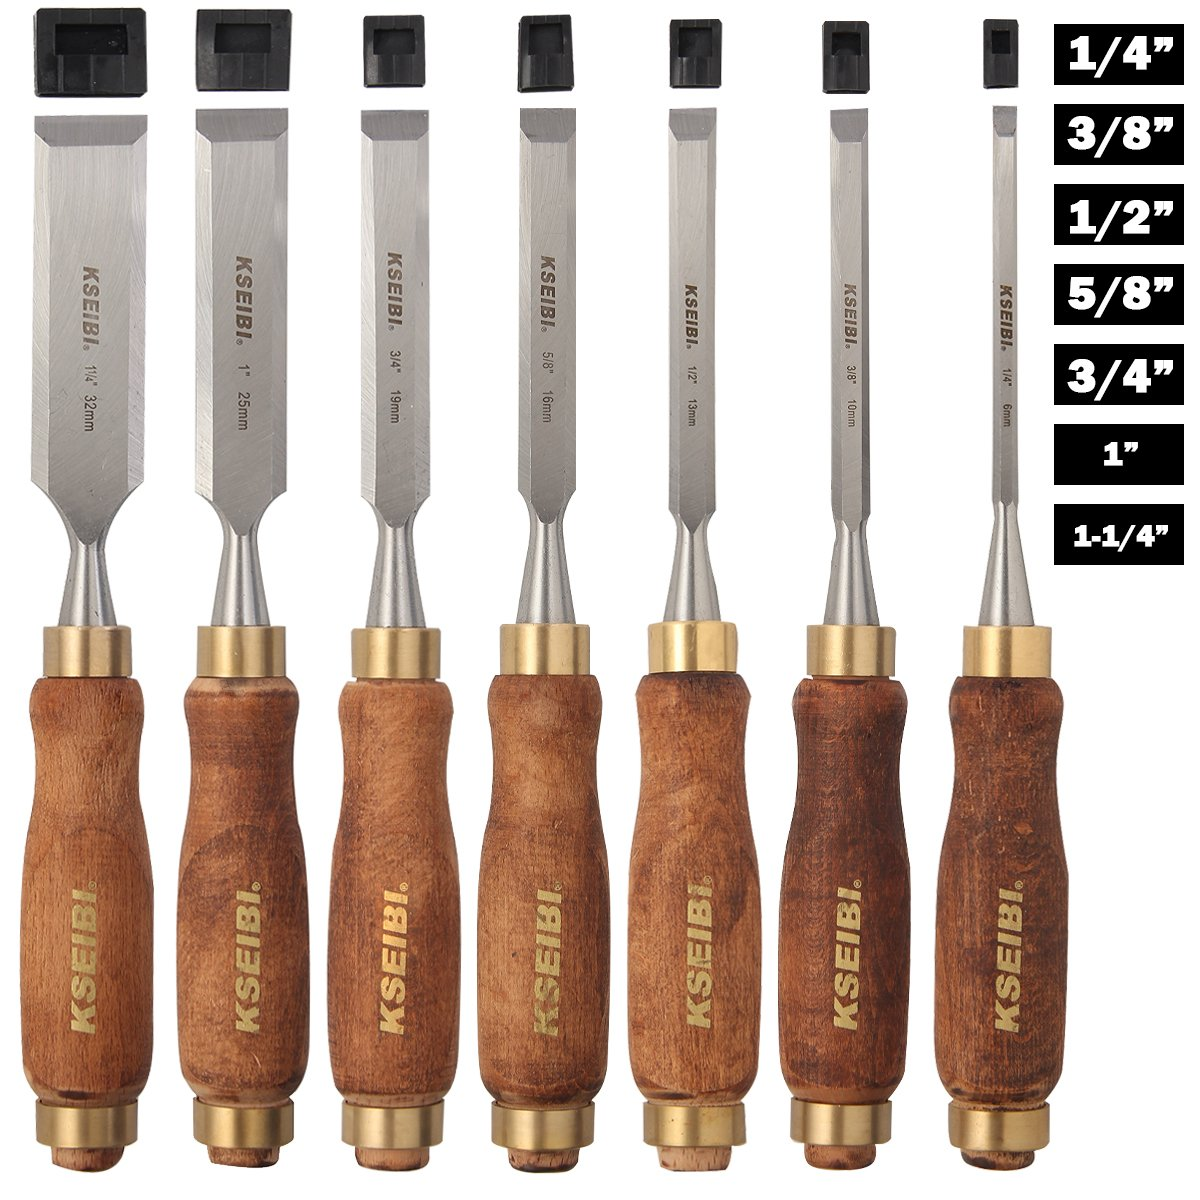 Premium Grade 7 Piece Wood Chisel Set, Woodworking Chisels with Wooden Handles for Carving by KSEIBI